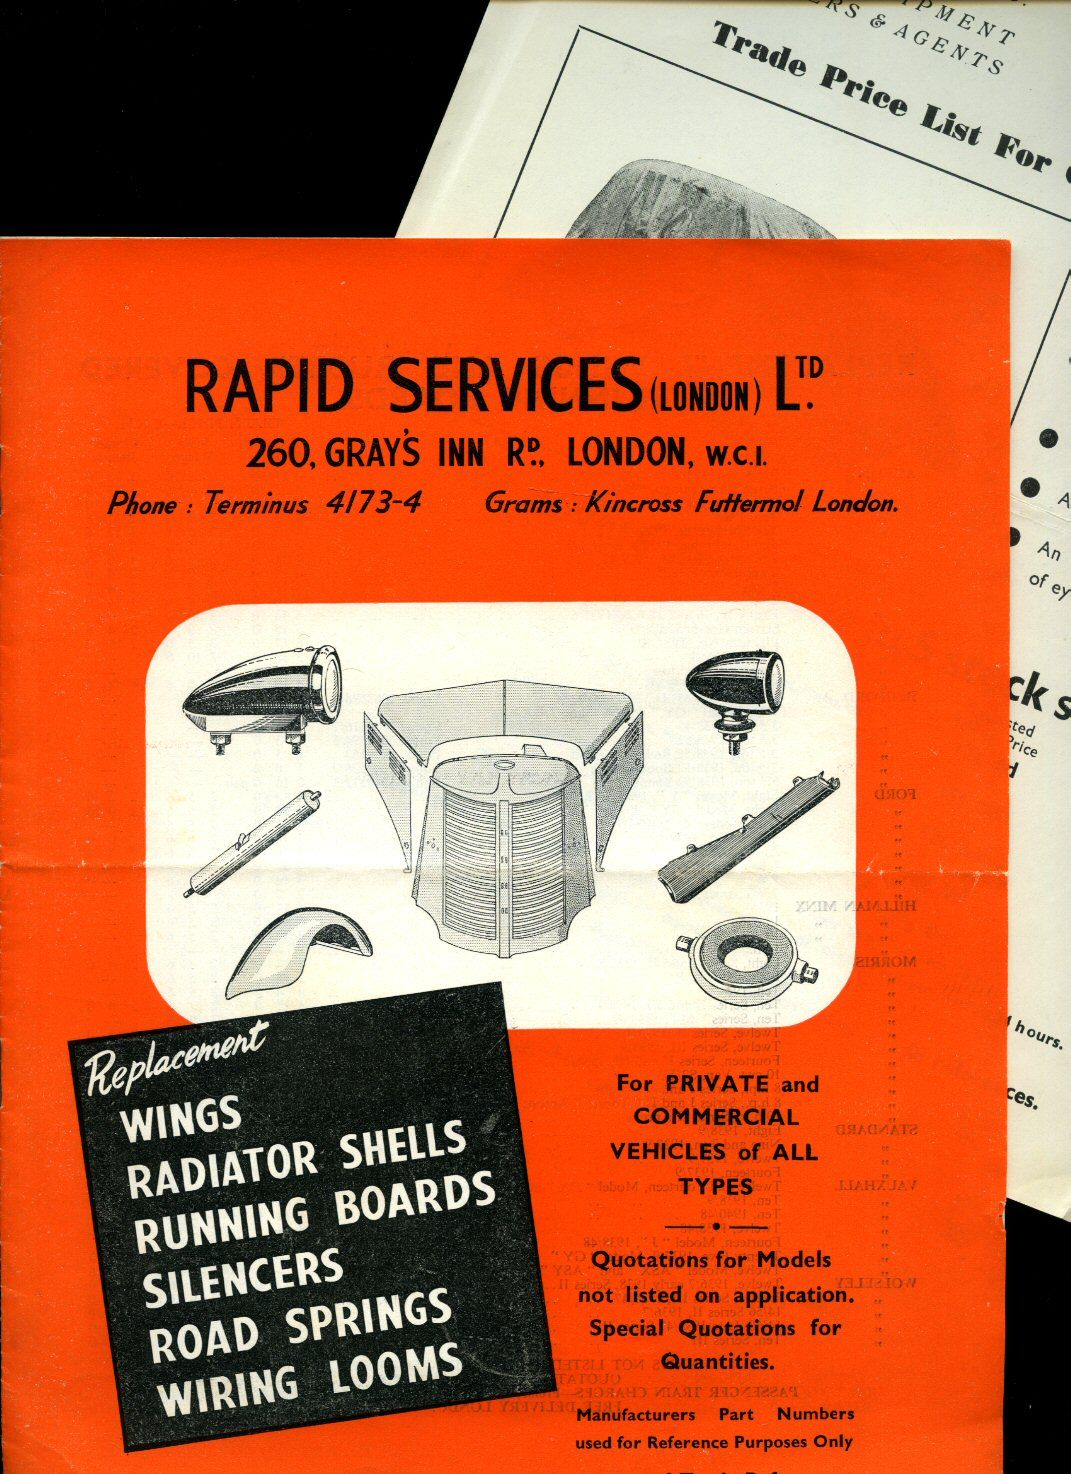 Rapid Services Ltd Brochure Catalogue For Replacement Wings Replacing Wiring Loom Radiator Shells Running Boards Silencers Road Springs Looms With Manufacturers